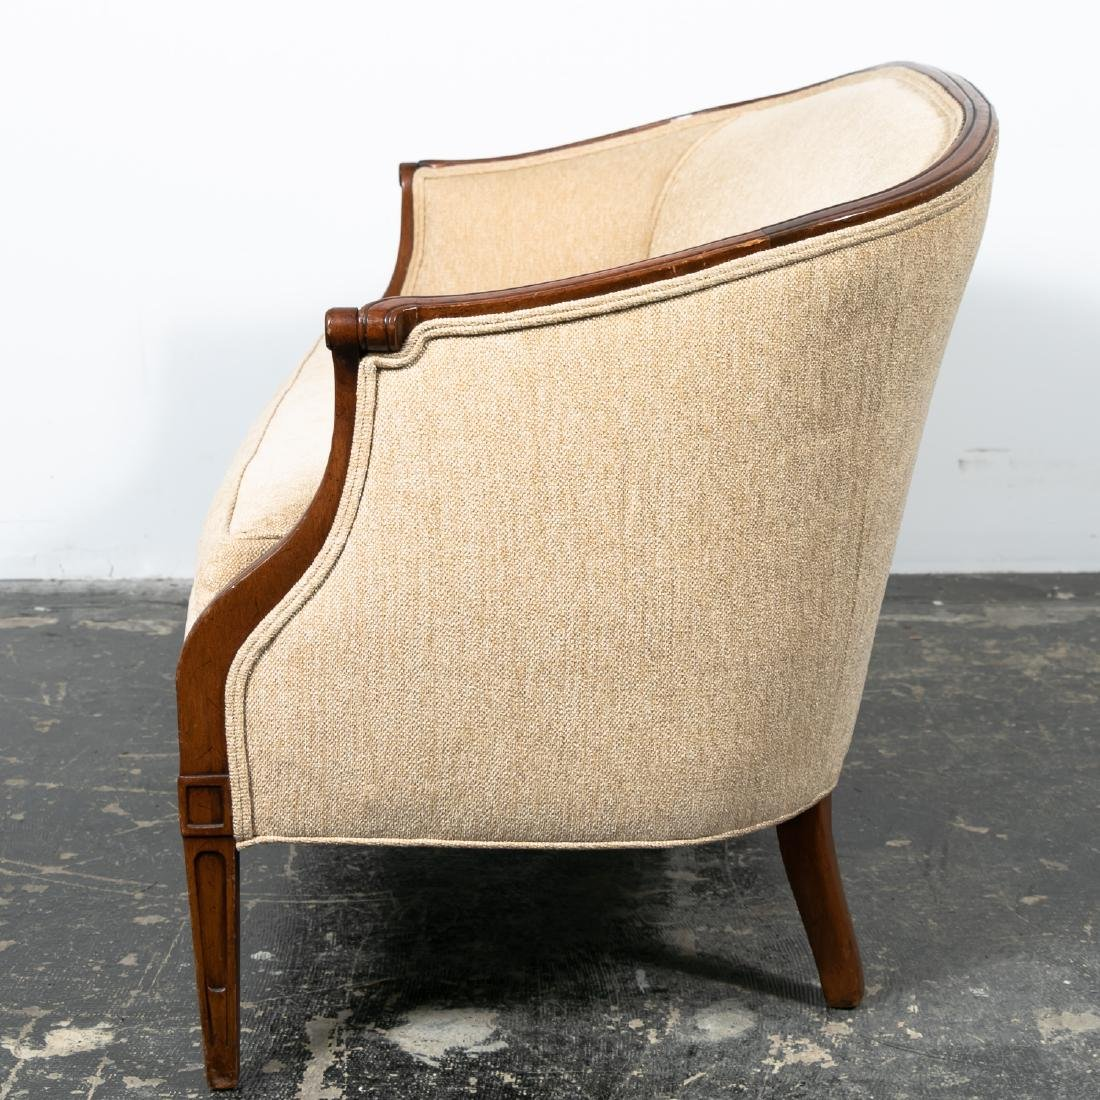 Hepplewhite Style Upholstered Settee, 20th Cent. - 3